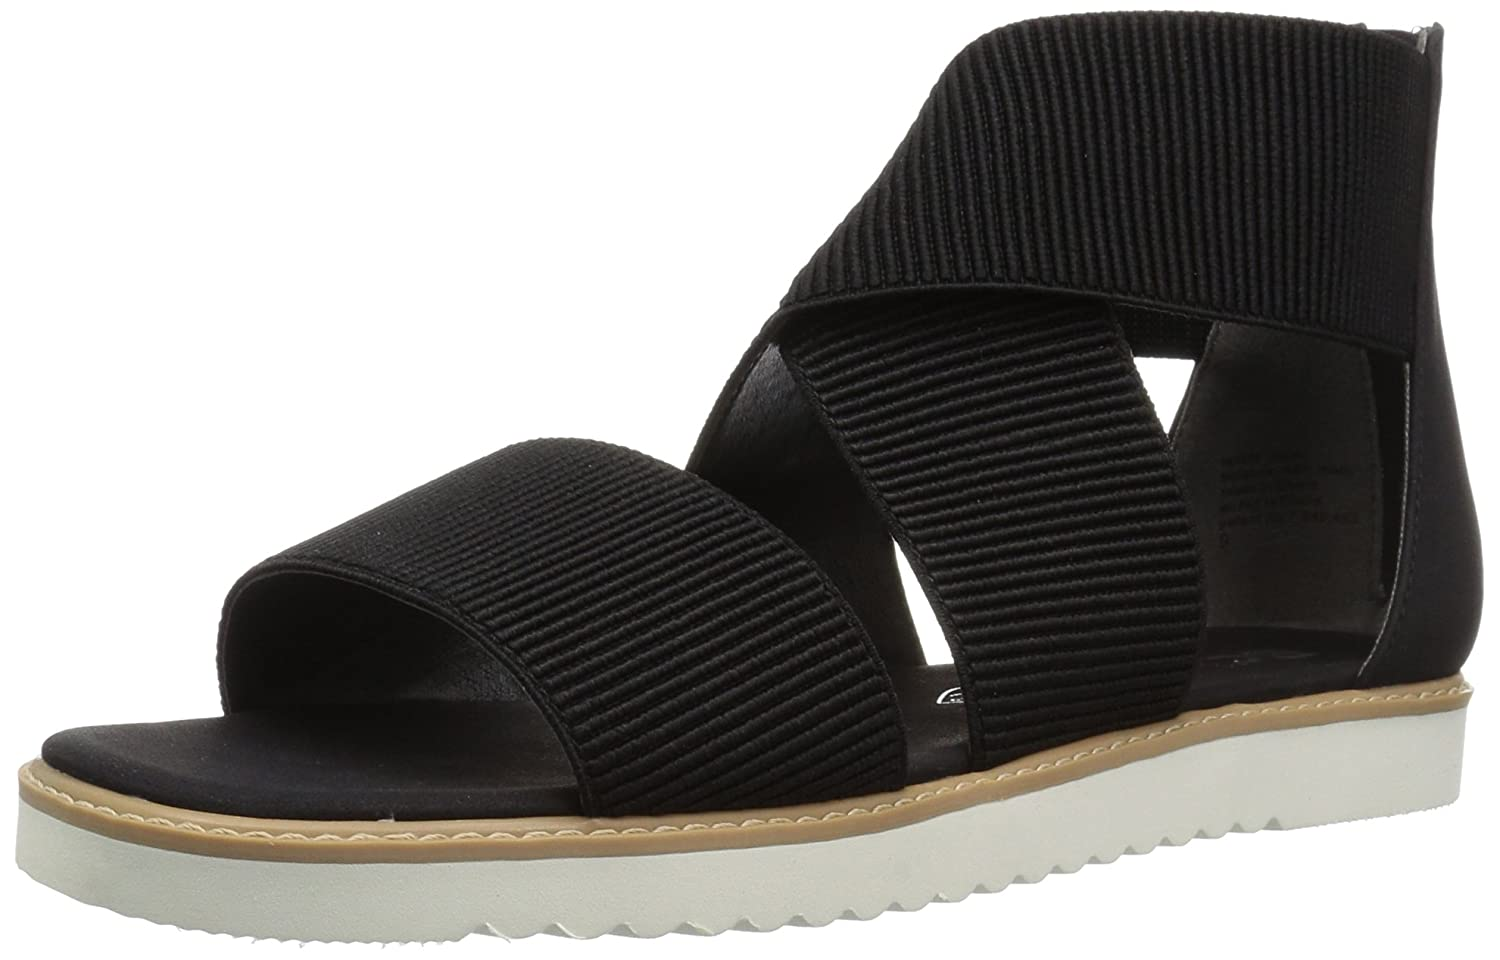 BC Footwear Women's Ring Toss Flat Sandal B0759KRC2B 9.5 B(M) US|Black